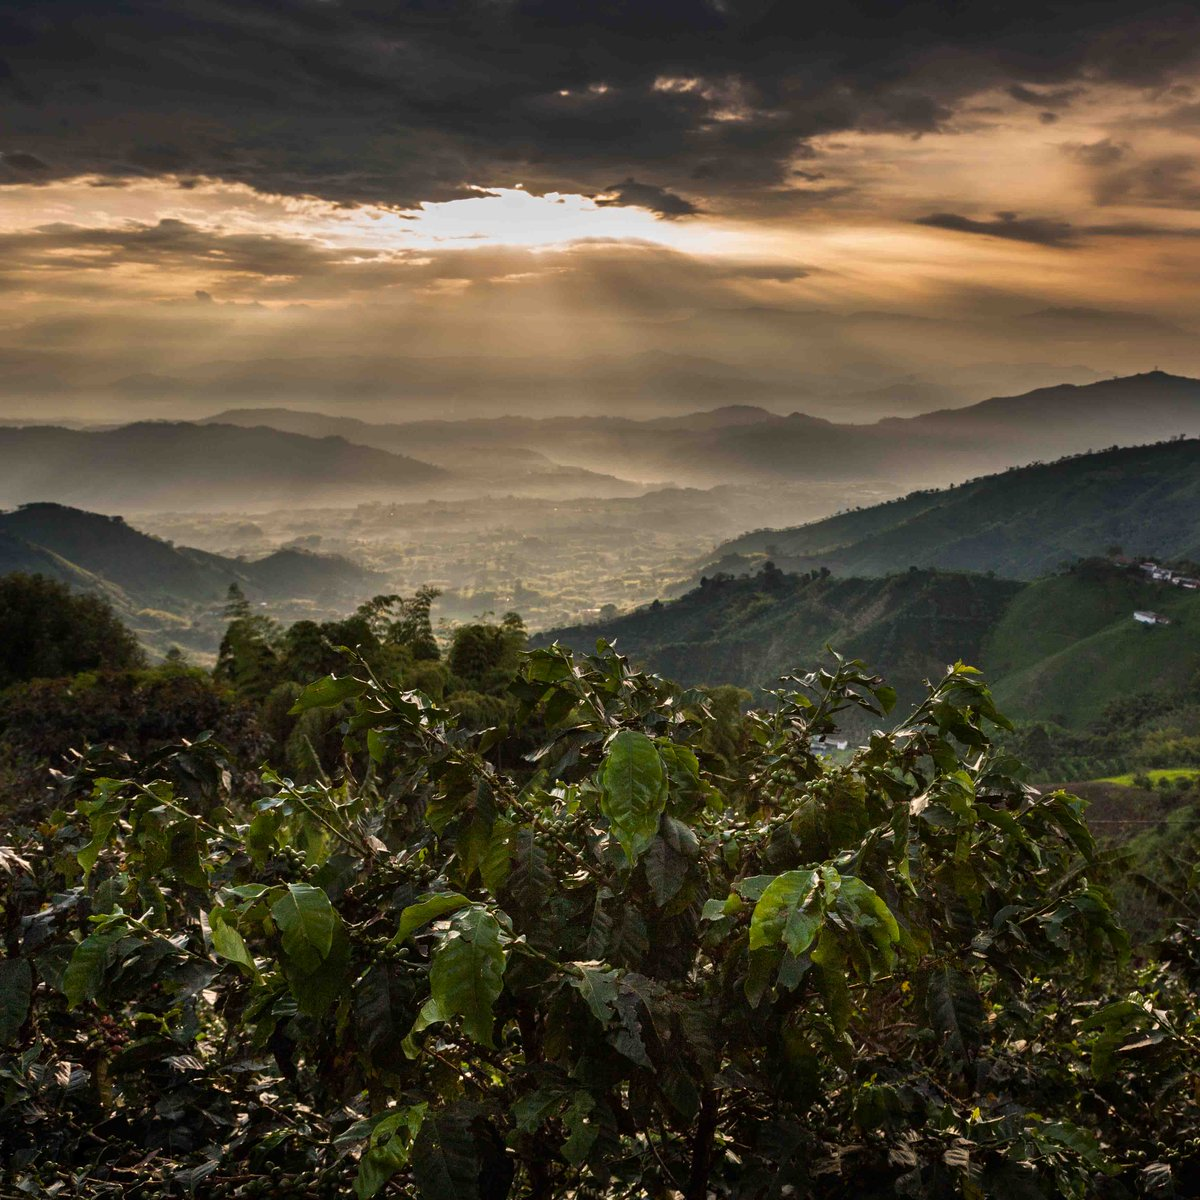 Each cup of Nescafe Gold contains Arabica beans, handpicked in the mountains of countries like Colombia, Brazil, Honduras, Vietnam and Indonesia  http://bit.ly/2S7fW46